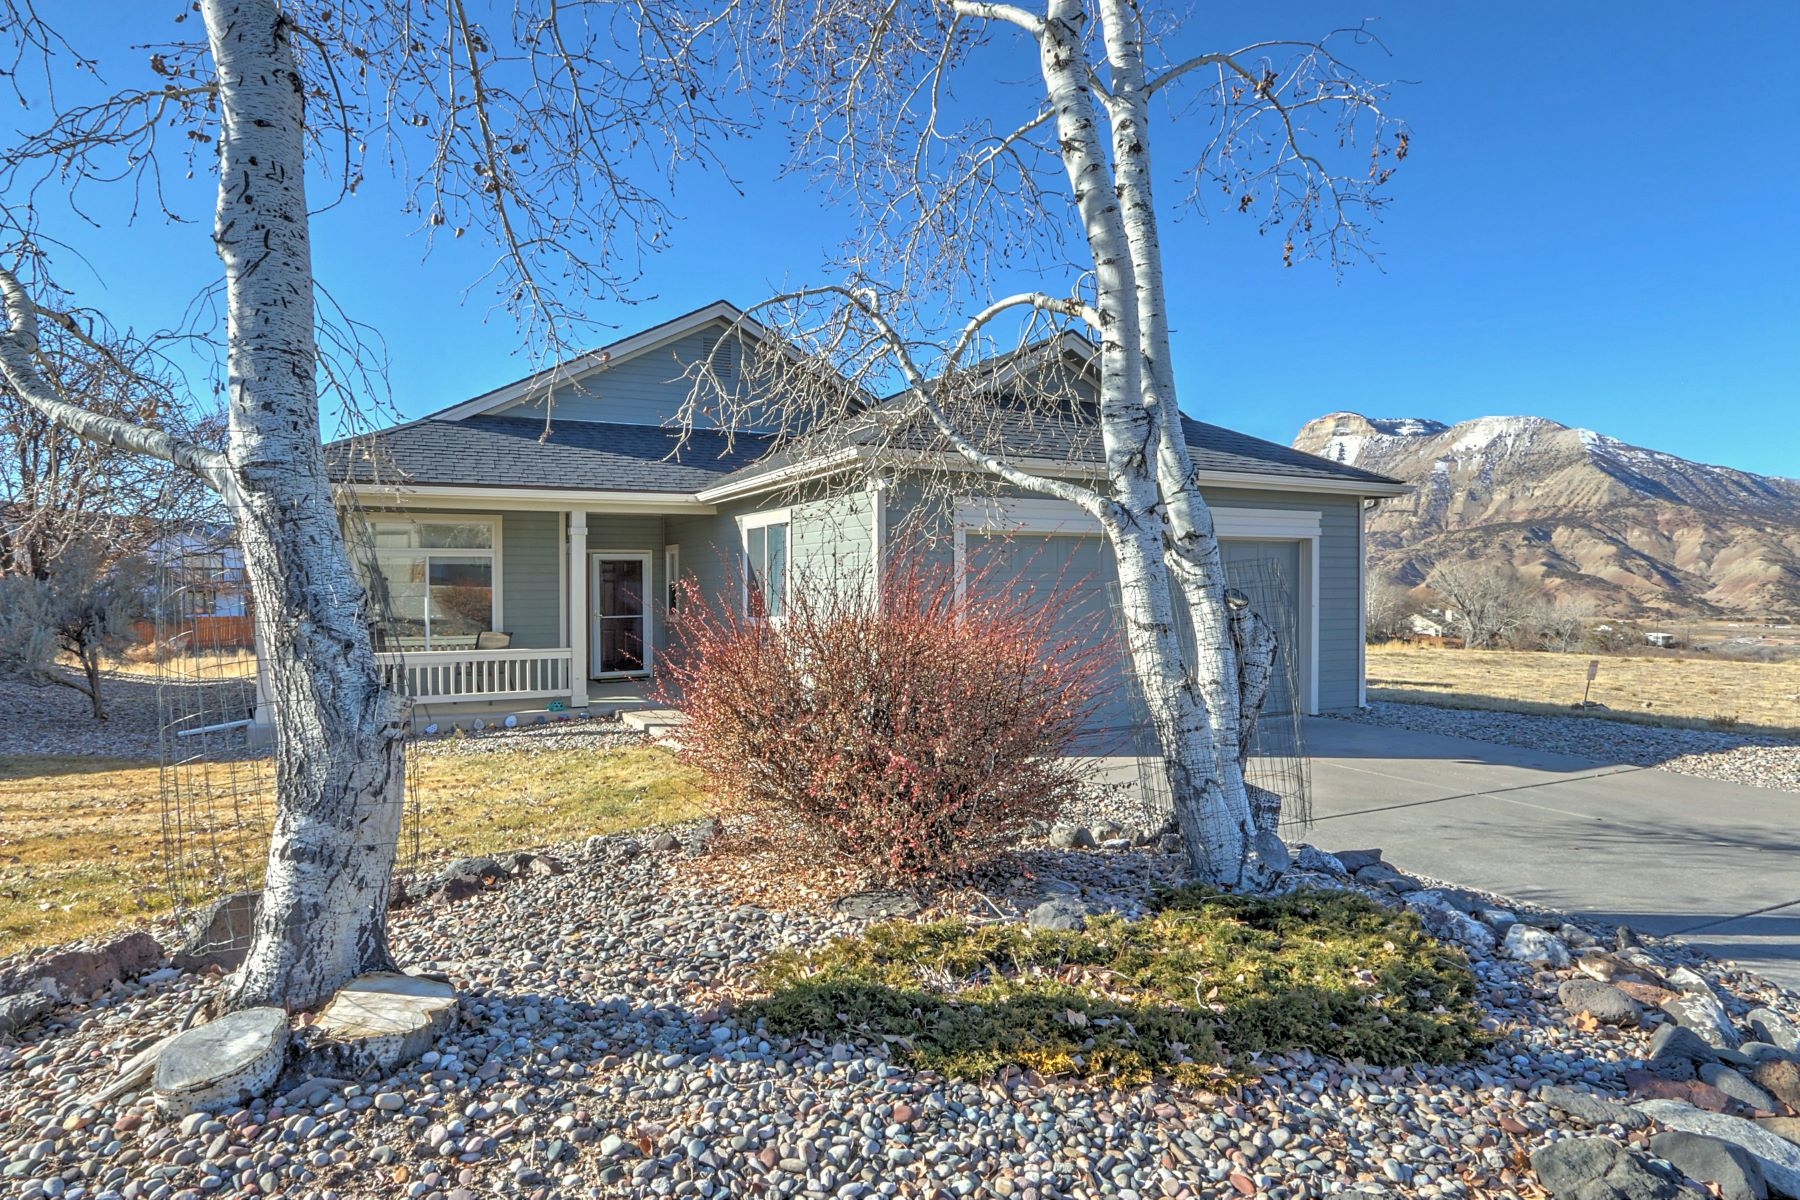 Single Family Homes for Sale at CANYON VIEW, LOT 25 206 Limberpine Circle Parachute, Colorado 81635 United States